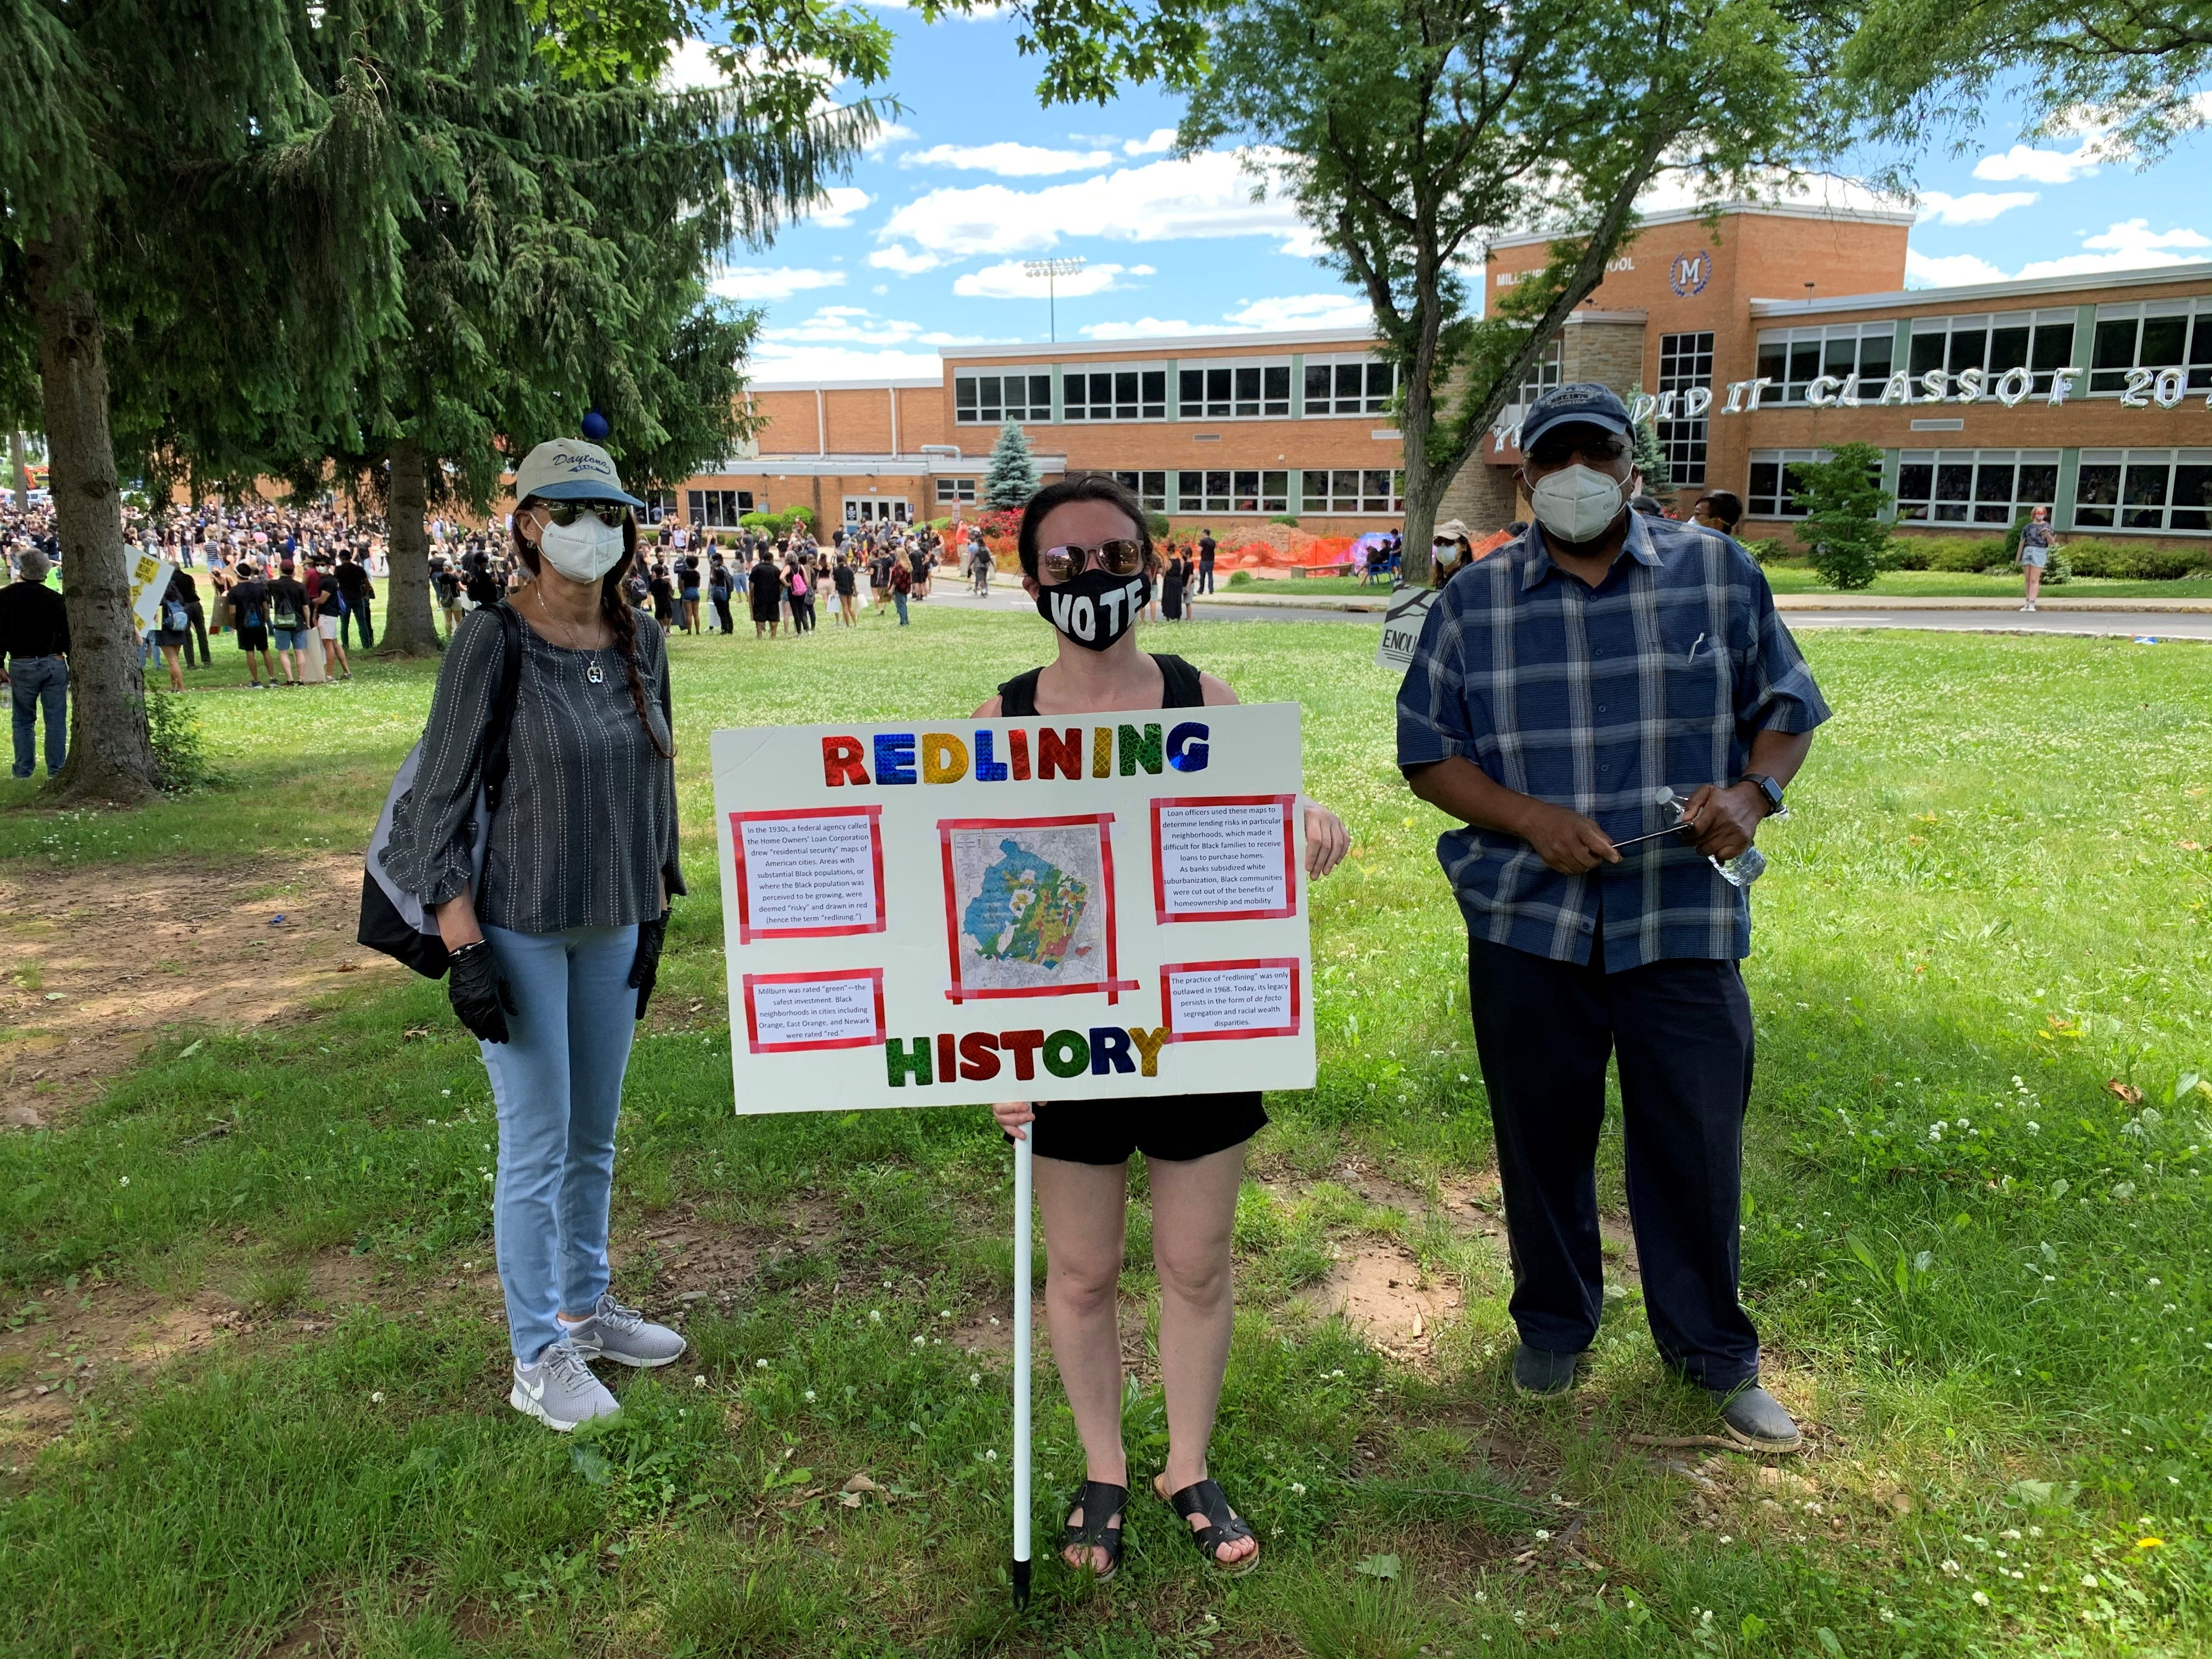 Courtney Cooperman attended a Black Lives Matter rally in Millburn, N.J., in June with a poster showing a history of redlining in Essex County.